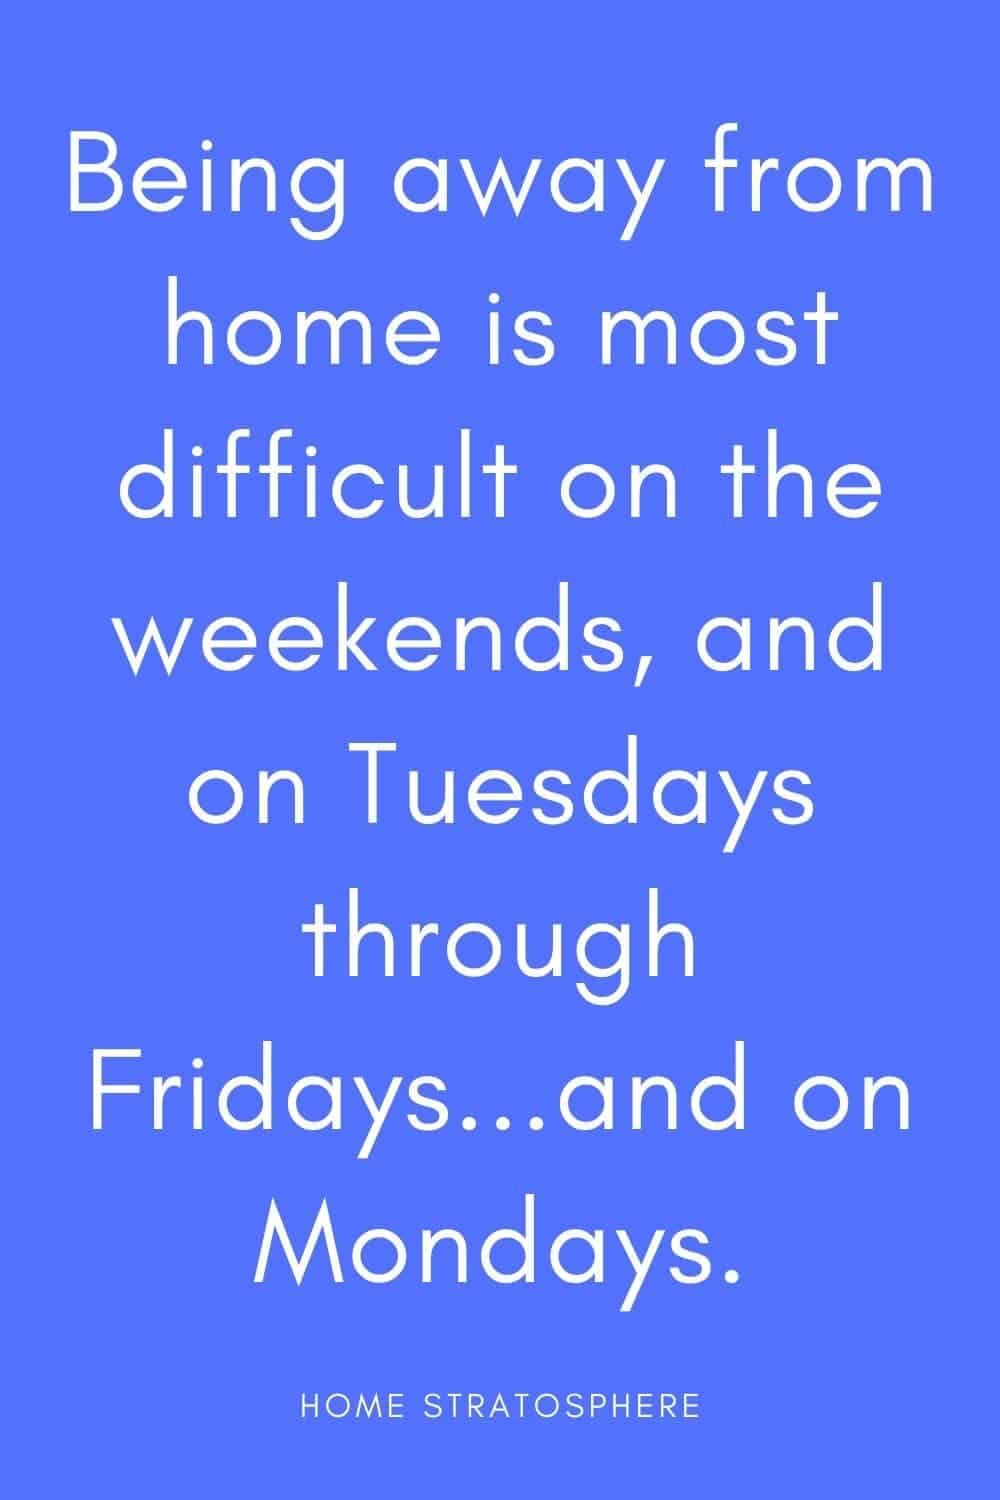 """Being away from home is most difficult on the weekends, and on Tuesdays through Fridays...and on Mondays."""